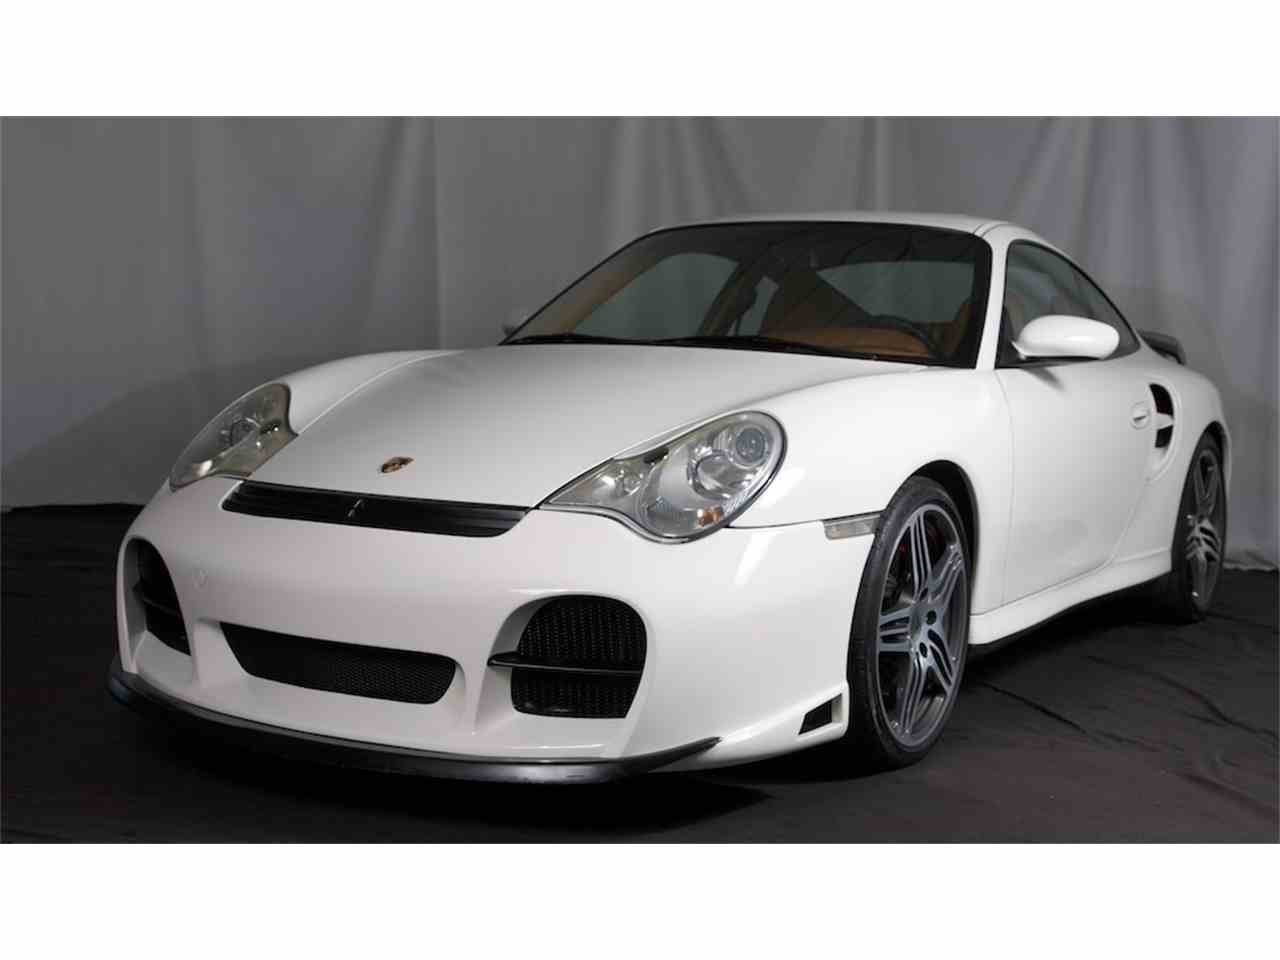 Large Picture of '01 Porsche 911 Turbo located in Monterey  California - $49,500.00 Offered by Mohr Imports Inc. - LU5E